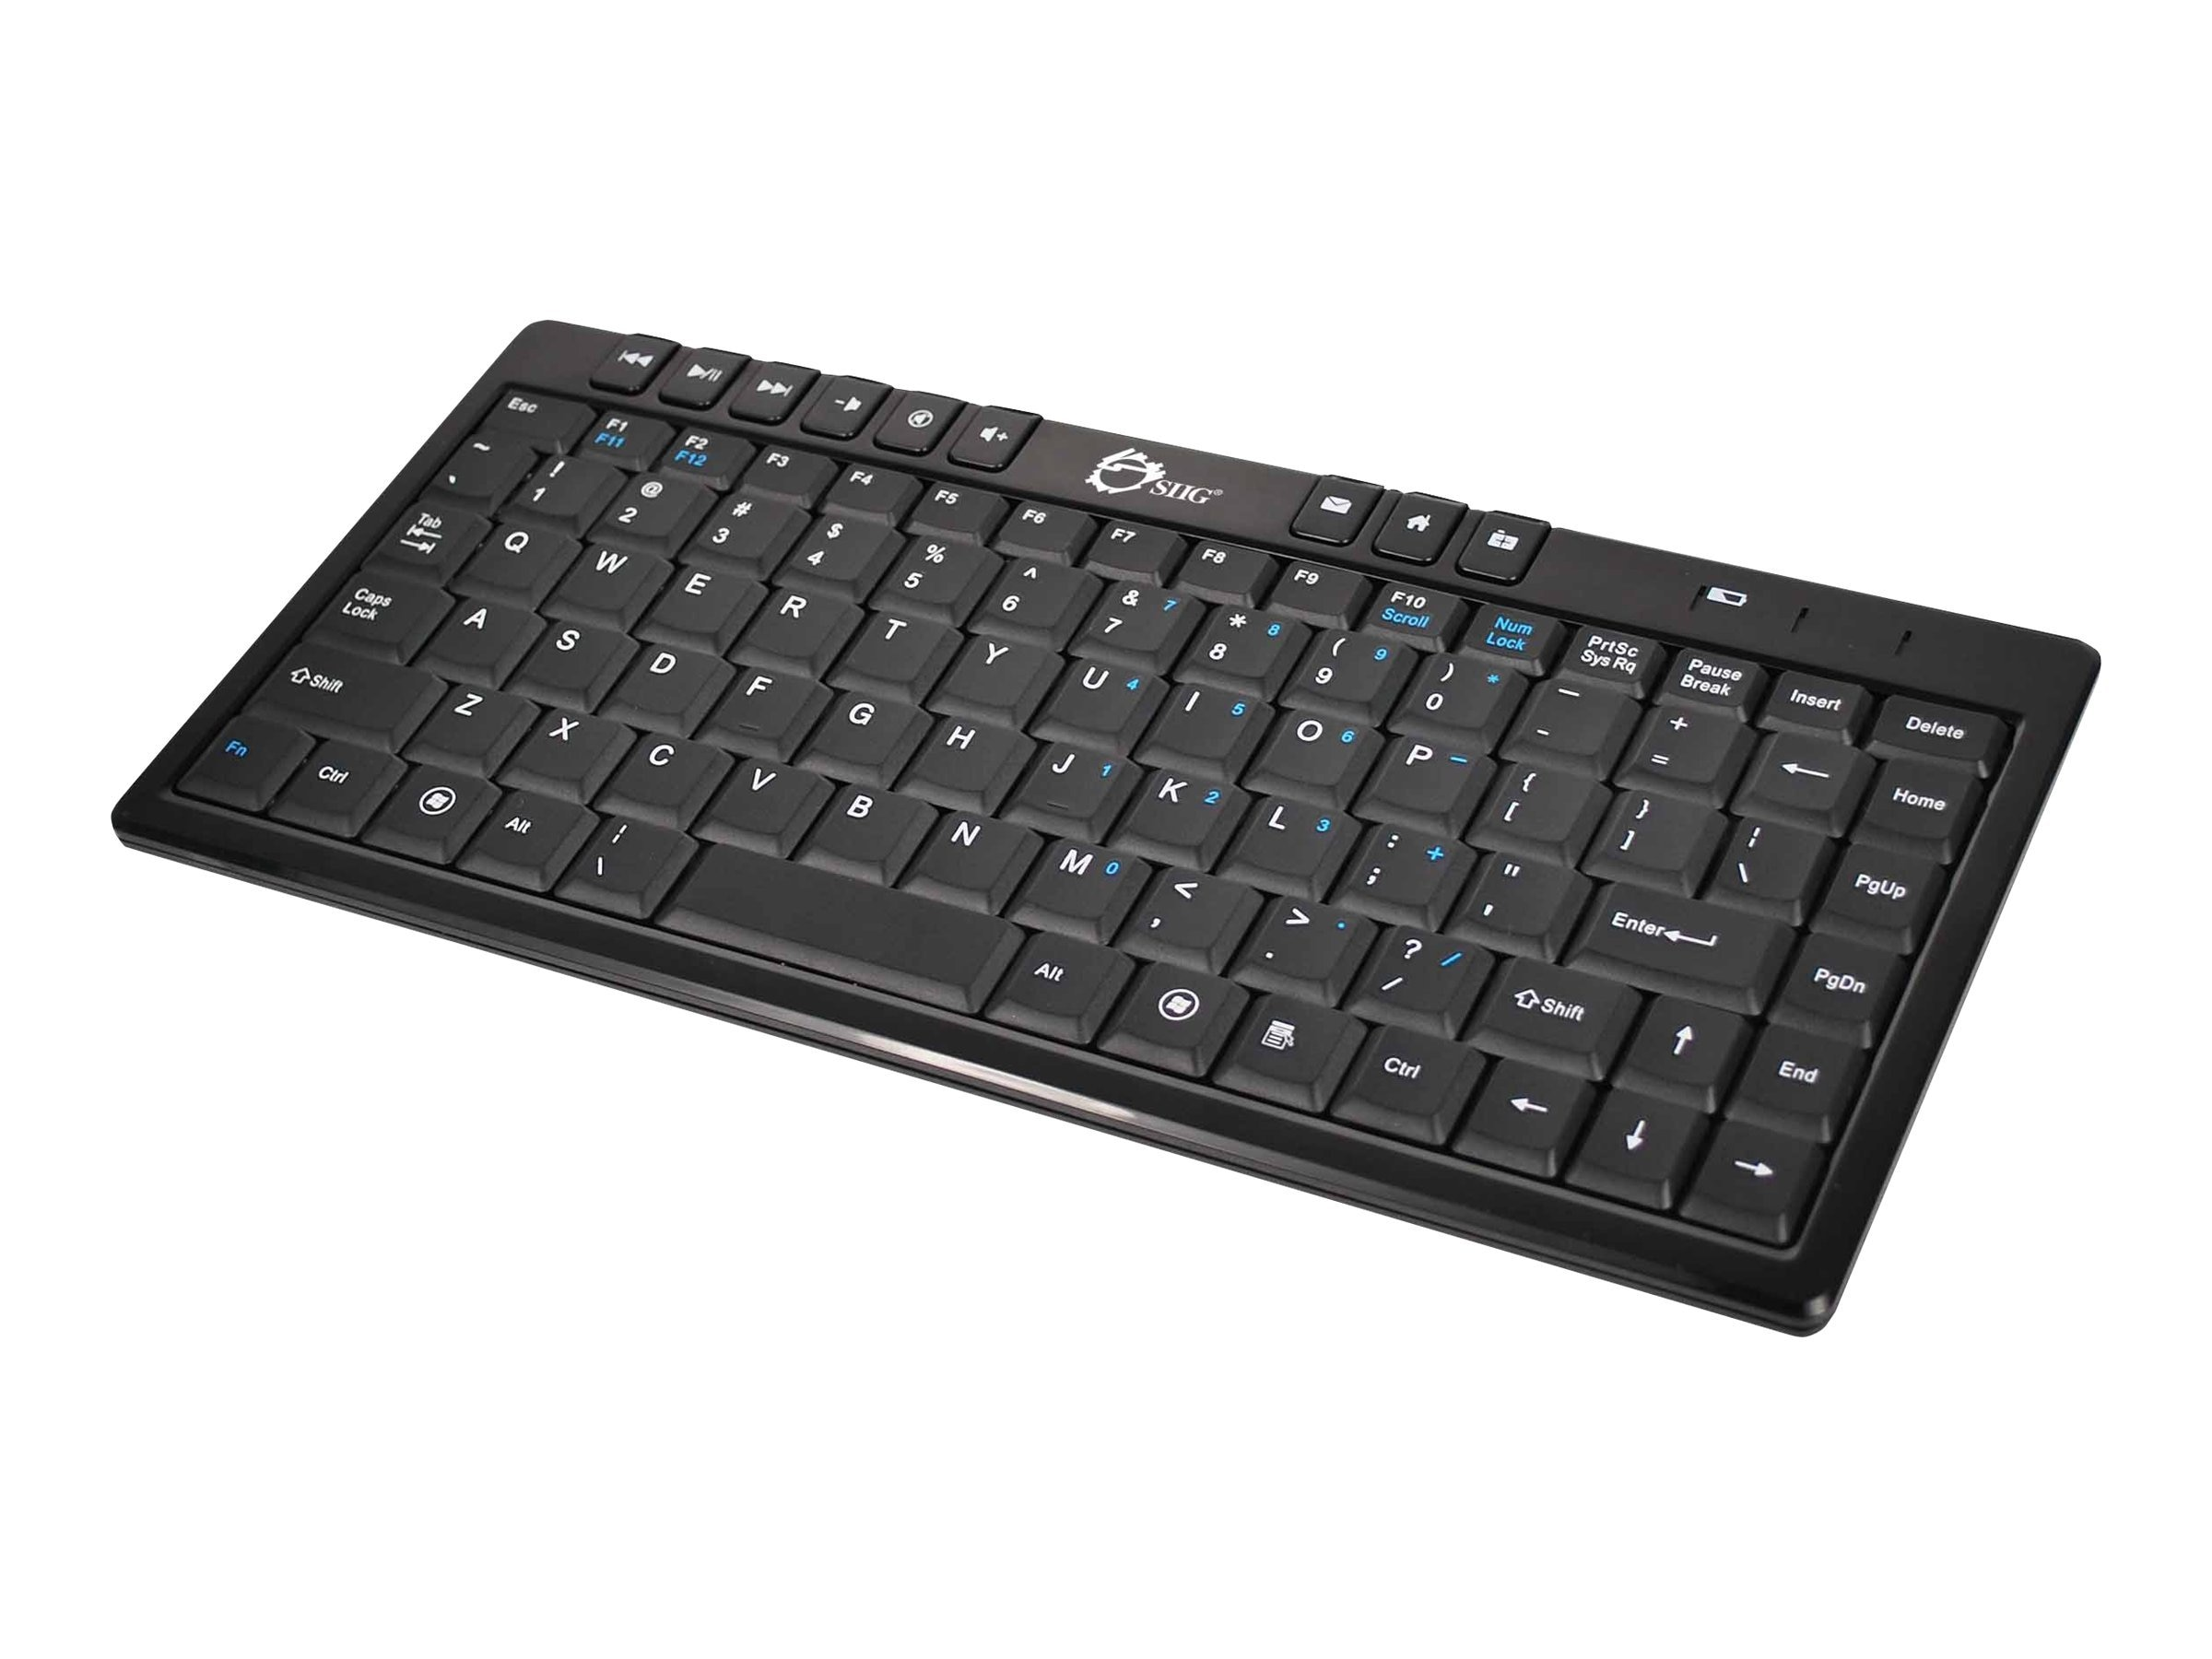 Siig Wireless Ultra Slim MM Mini Keyboard, JK-WR0612-S1